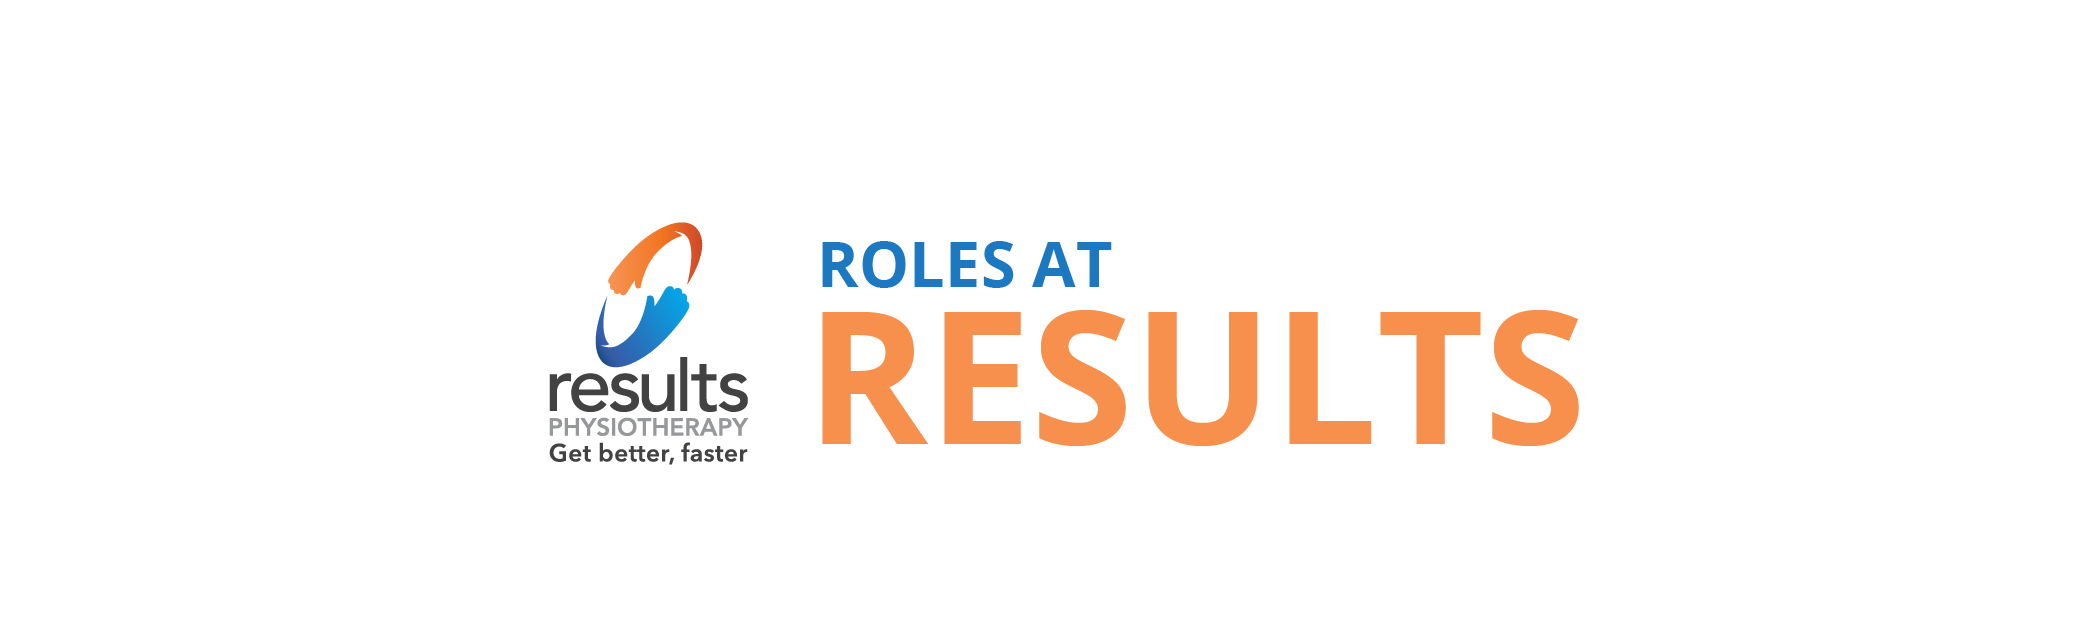 Roles at Results | Results Physiotherapy